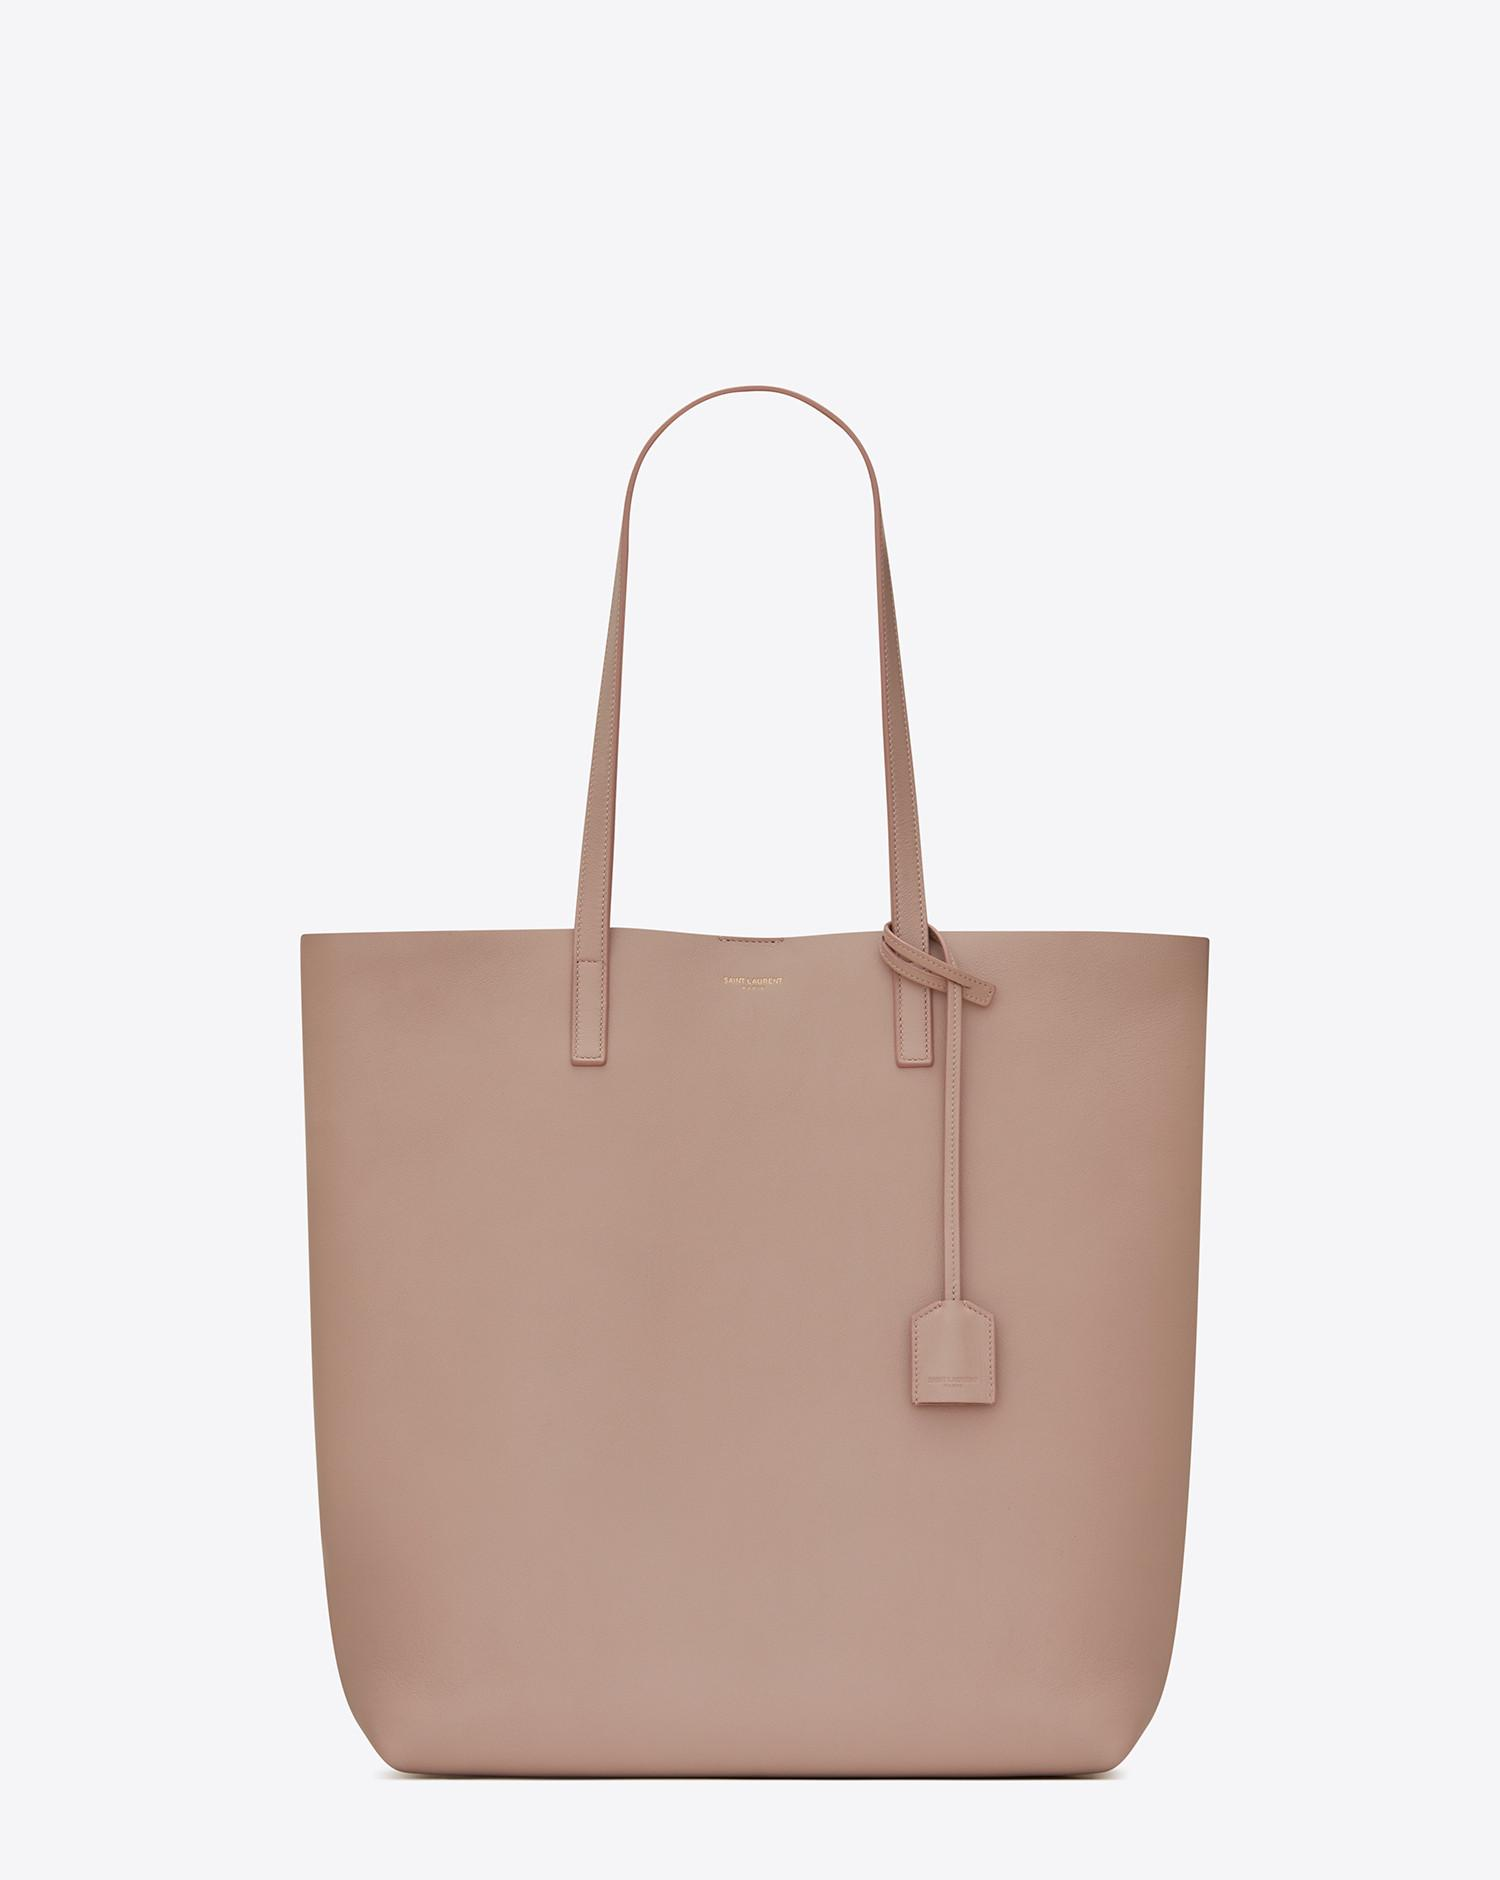 c1b499c2b8ba Lyst - Saint Laurent Medium Shopping Tote Bag In Antique .